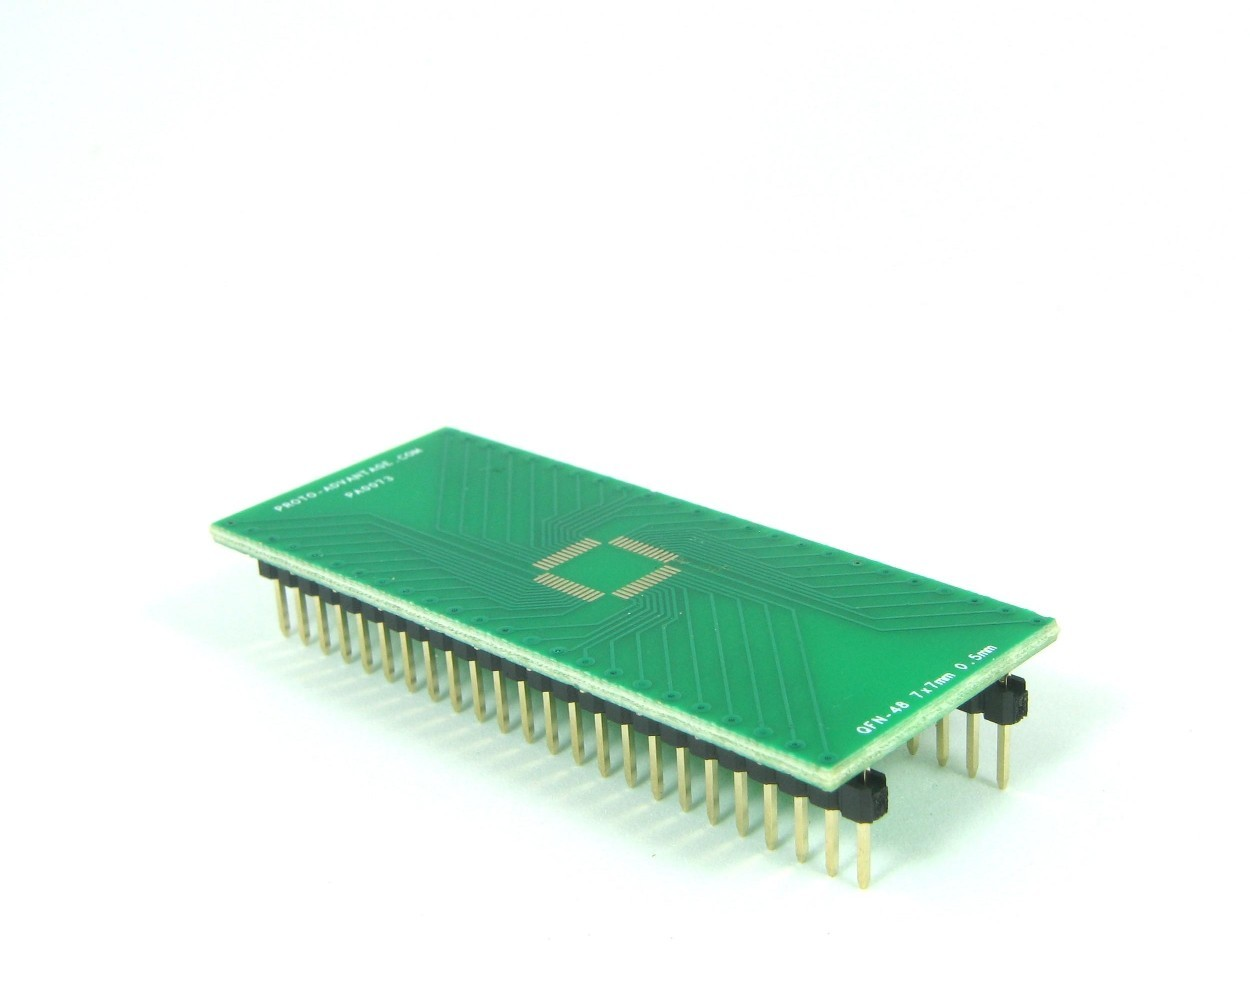 QFN-48 to DIP-48 SMT Adapter (0.5 mm pitch, 7 x 7 mm body)